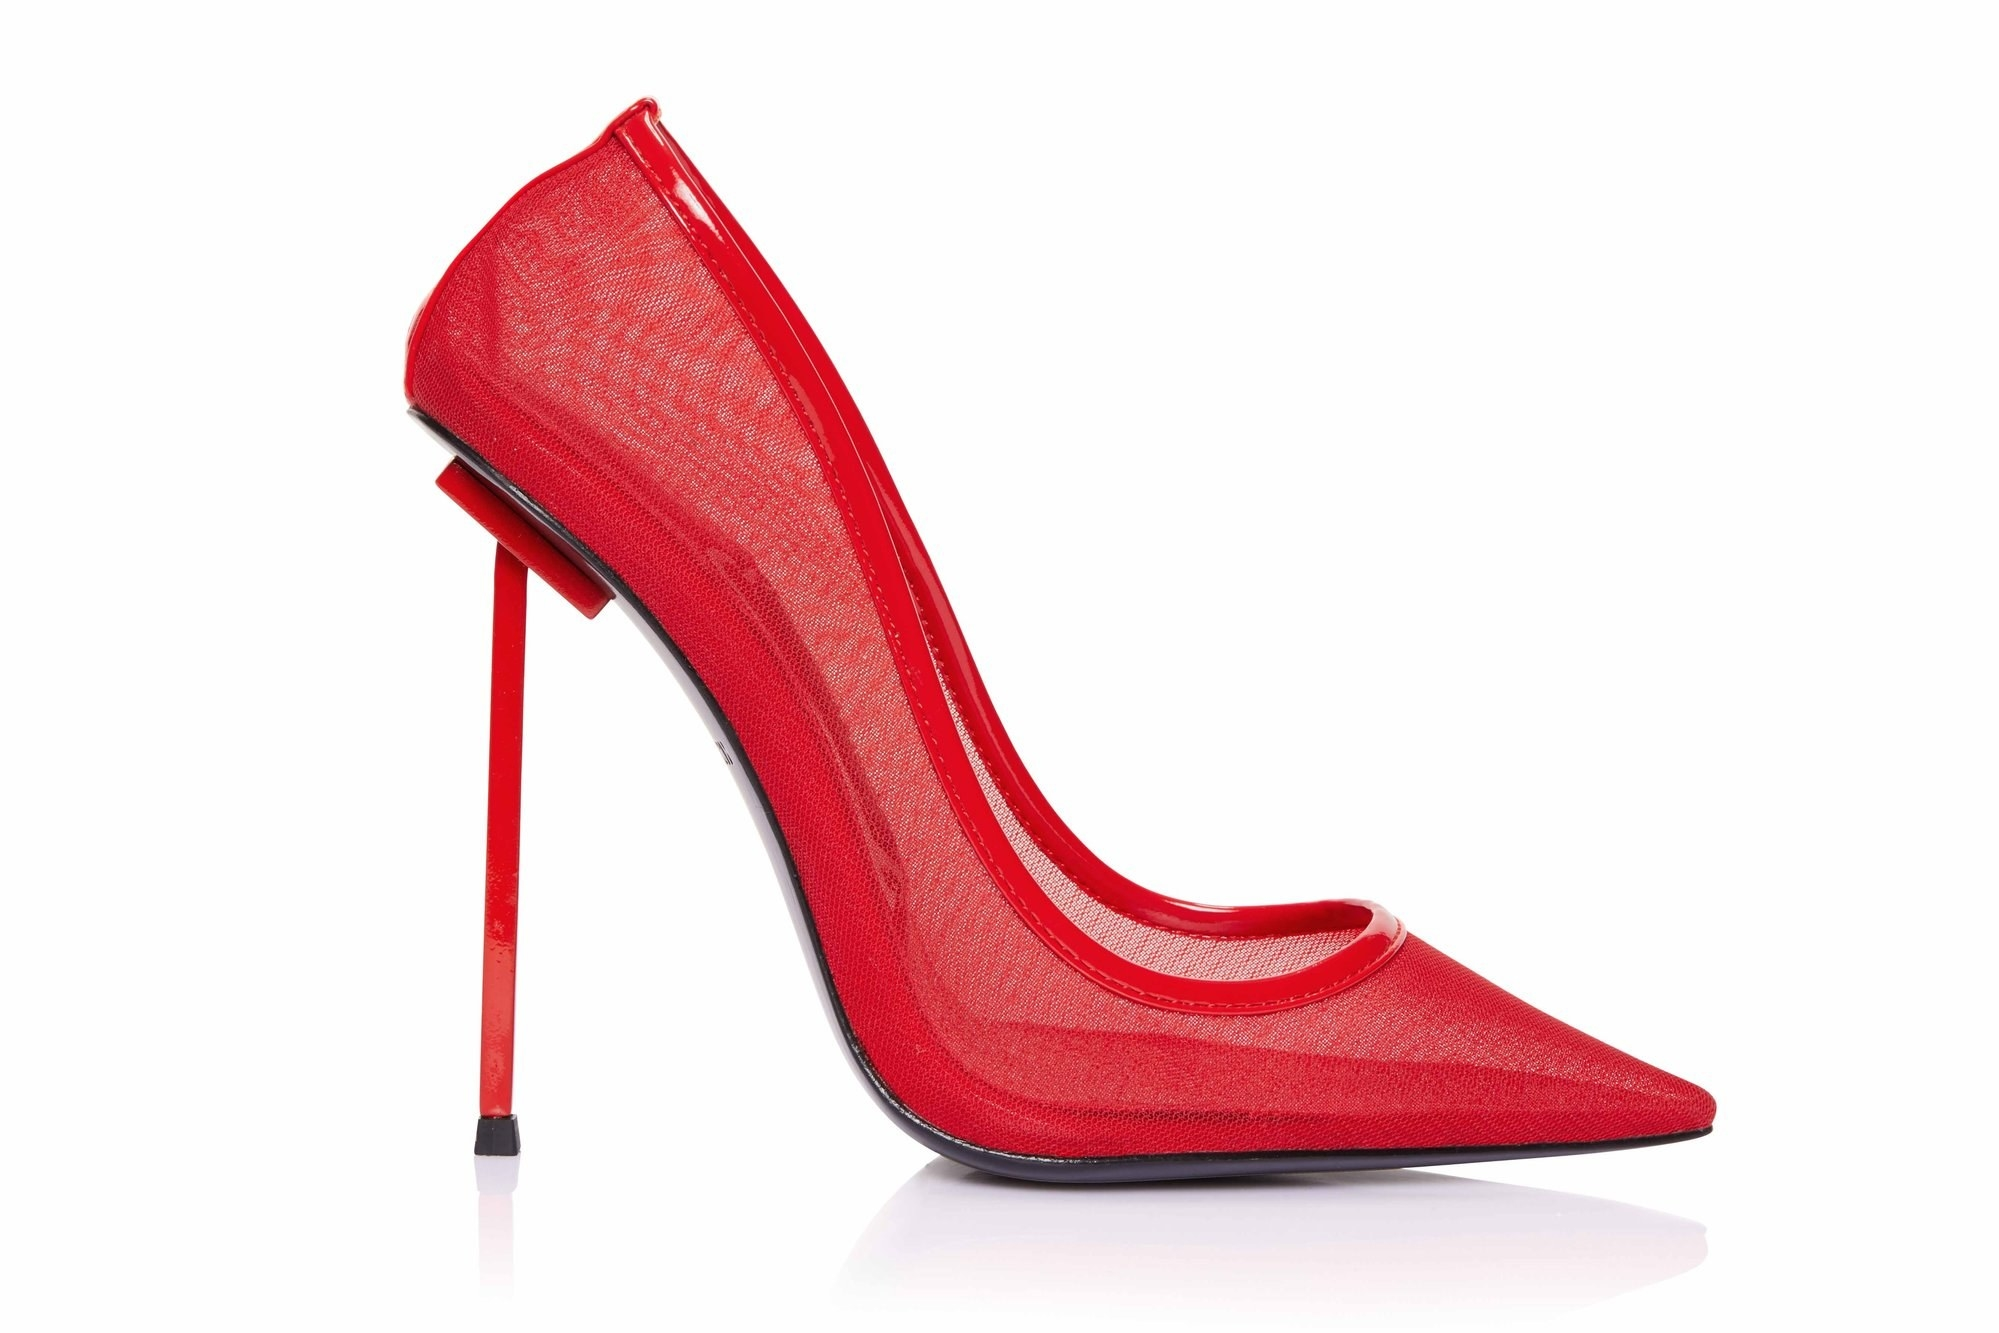 read pumps with a pointed toe and made of mesh with solid red leather trim around the edge. It's got a super skinny stiletto heel.